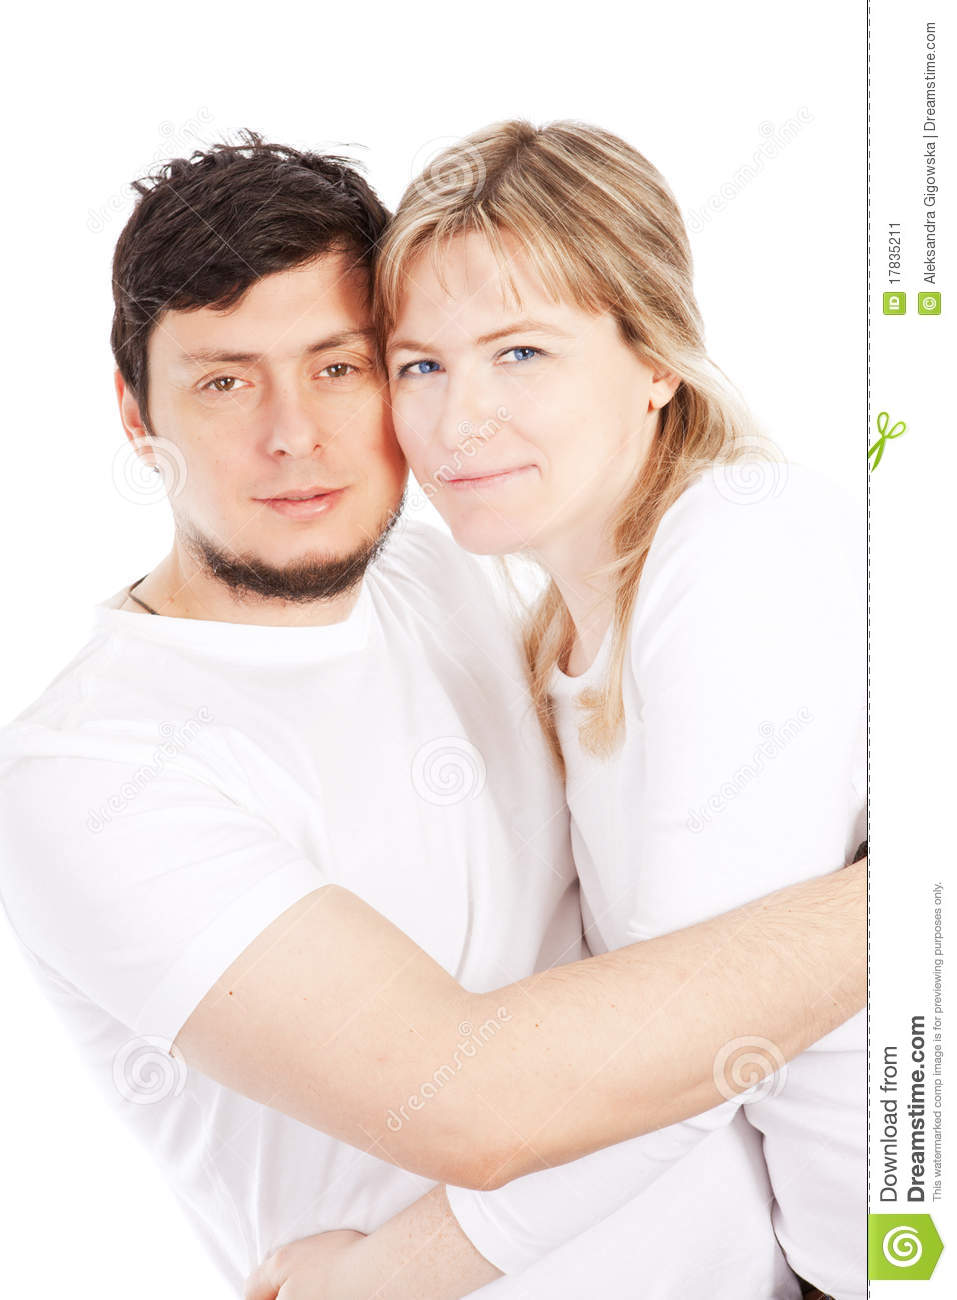 https://thumbs.dreamstime.com/z/happy-couple-love-smiling-over-white-17835211.jpg